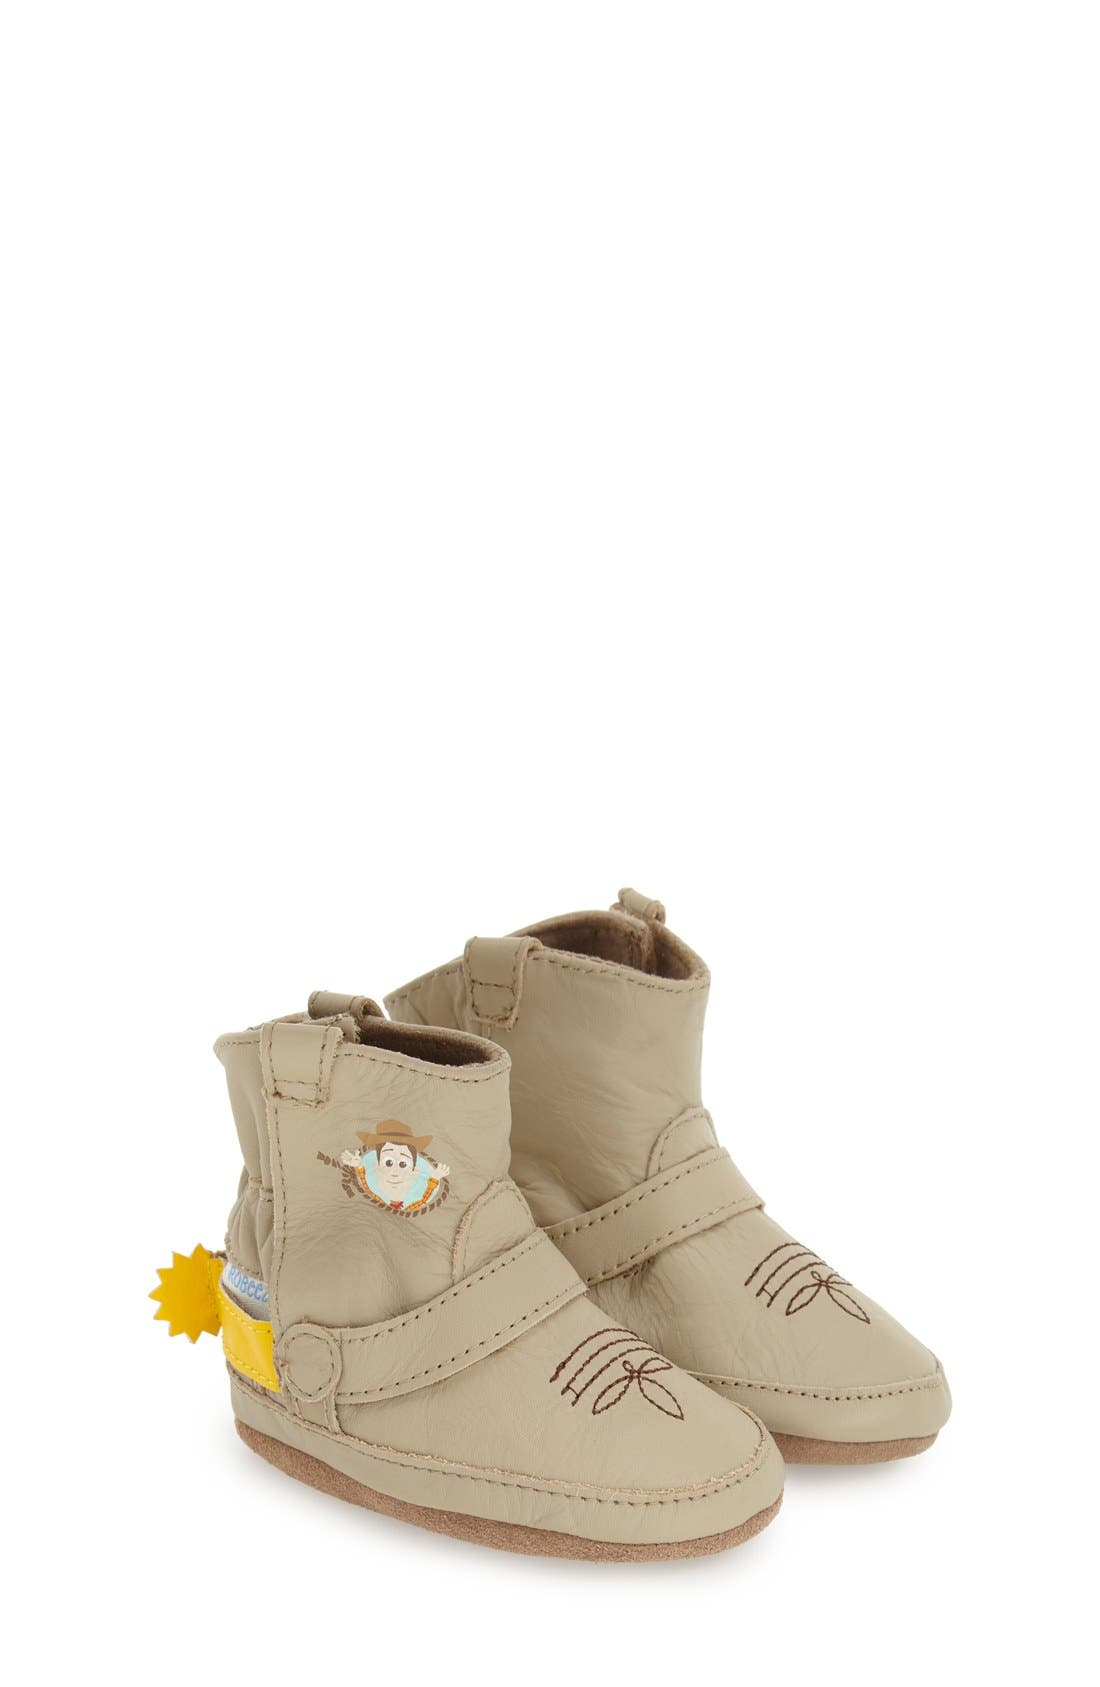 'Disney<sup>®</sup> Woody<sup>®</sup> Bootie' Crib Shoe,                             Main thumbnail 1, color,                             Taupe